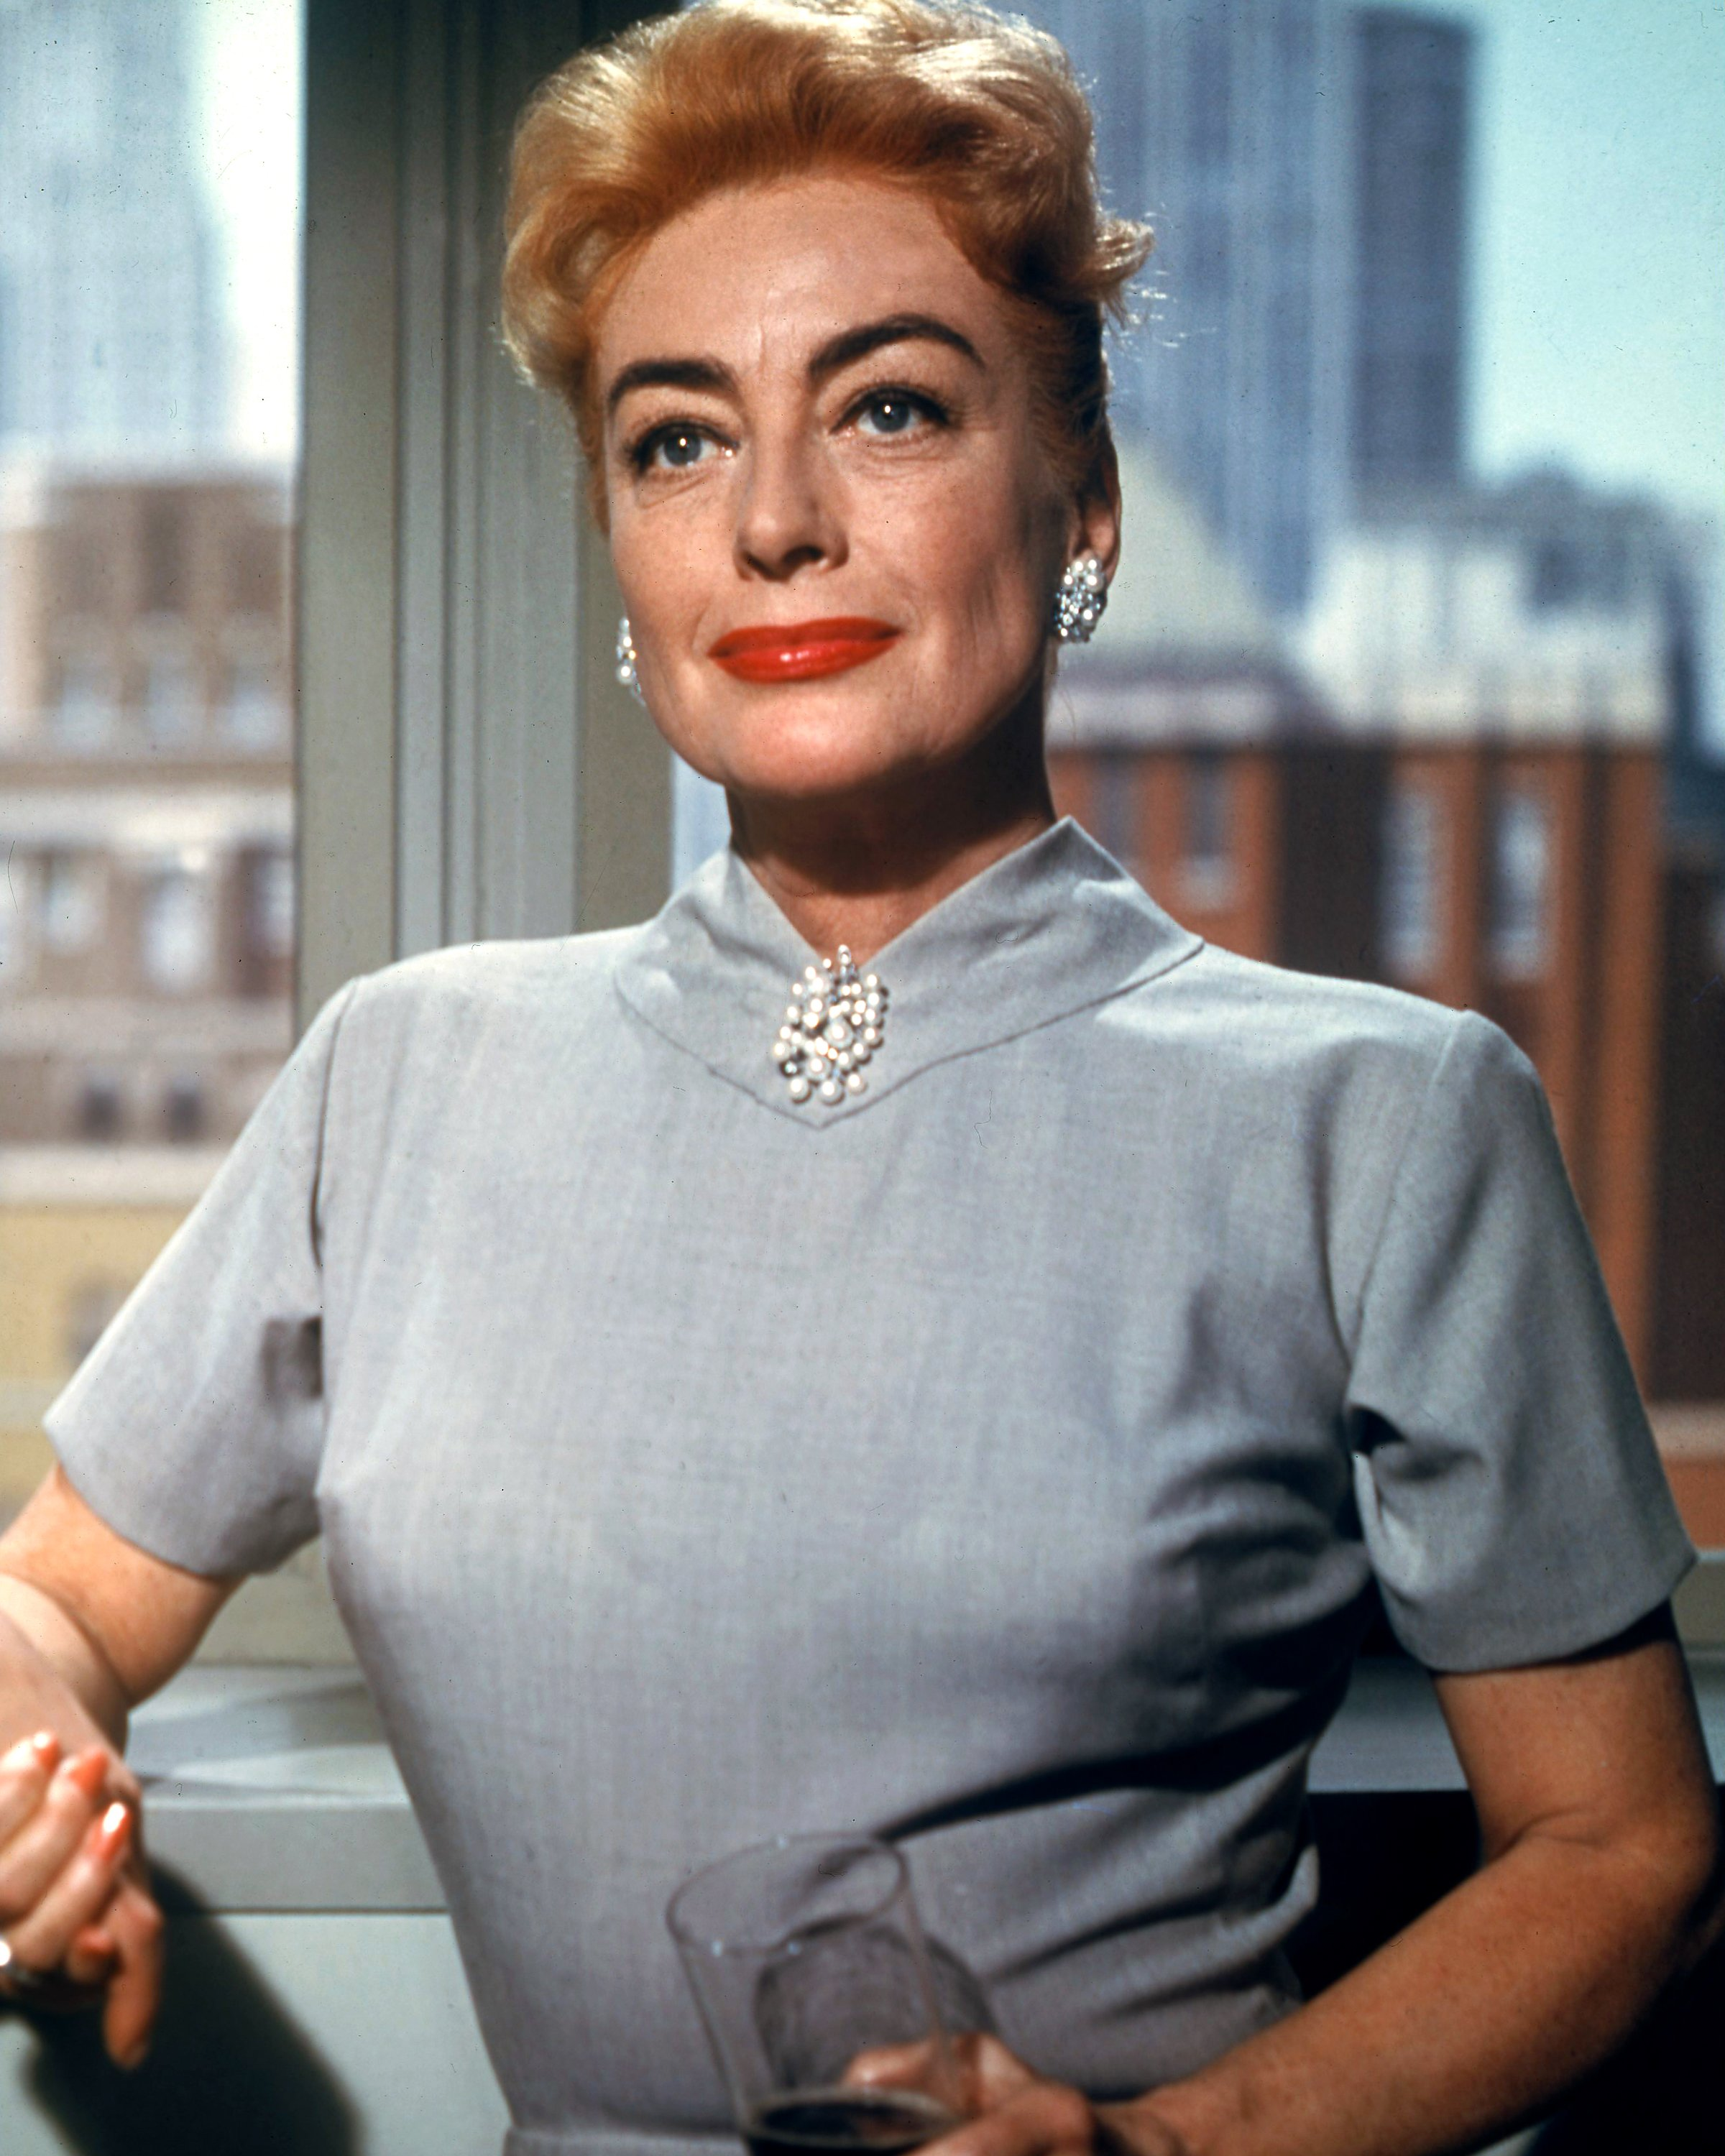 American actress Joan Crawford (1905 - 1977) in a promotional still from 'The Best Of Everything', directed by Jean Negulesco, 1959. | Source: Getty Images